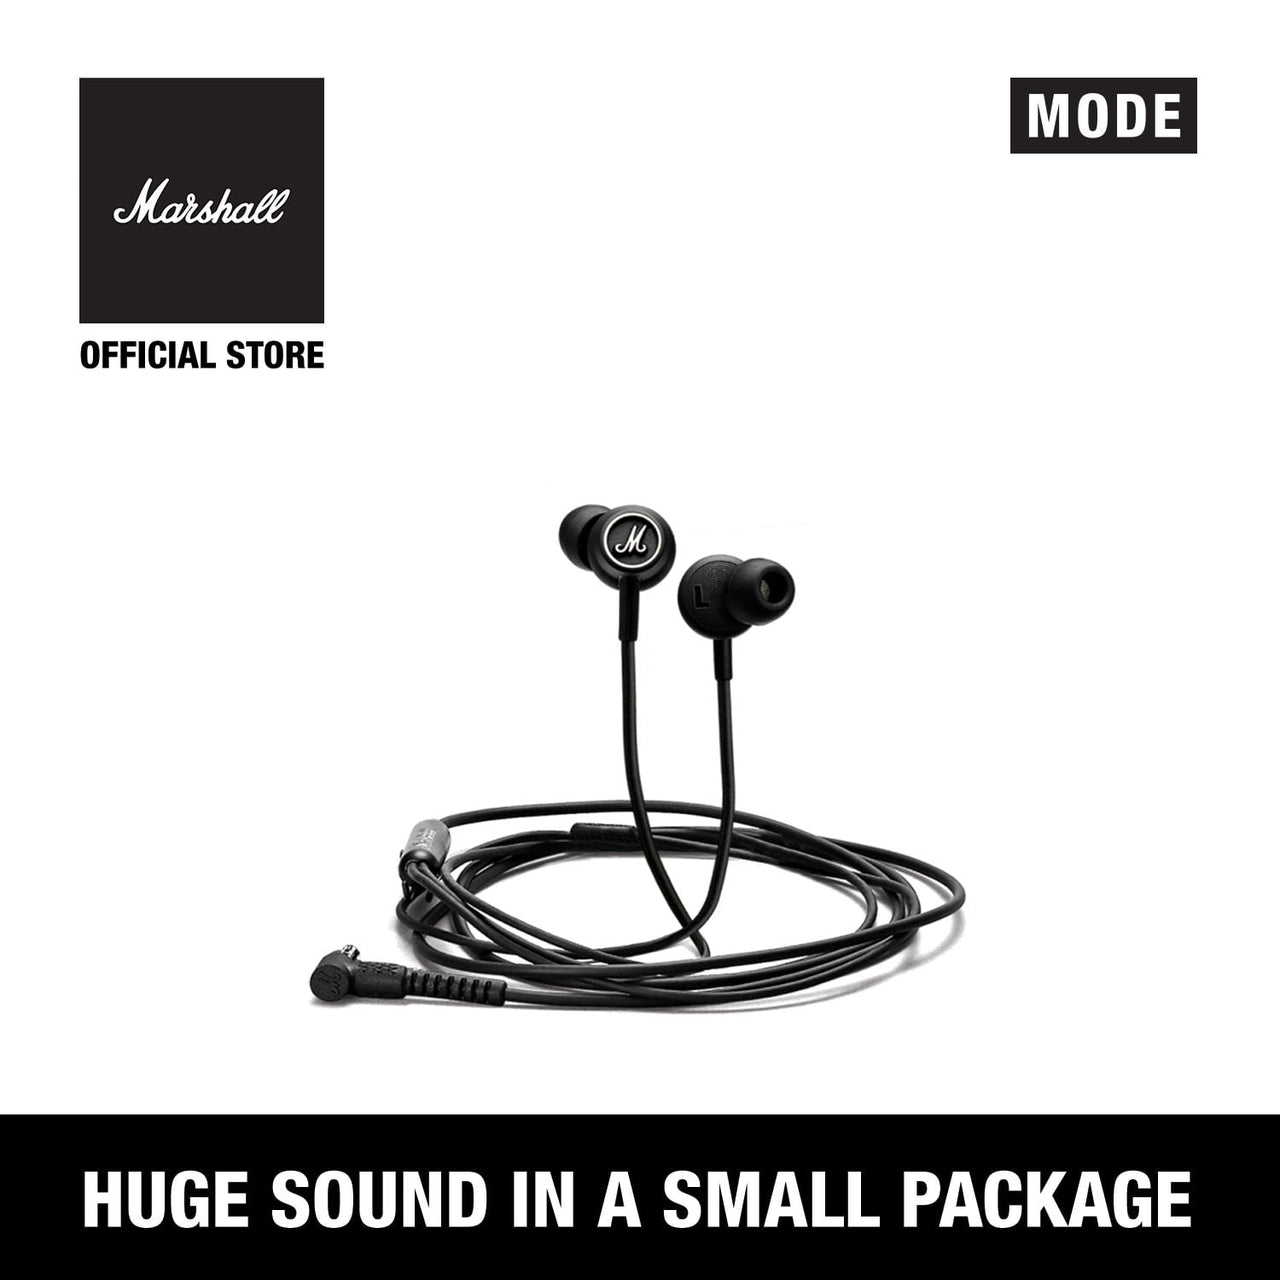 Mode Black & White [EVENT EXCLUSIVE], Headphones, Marshall Headphones, ASH Asia